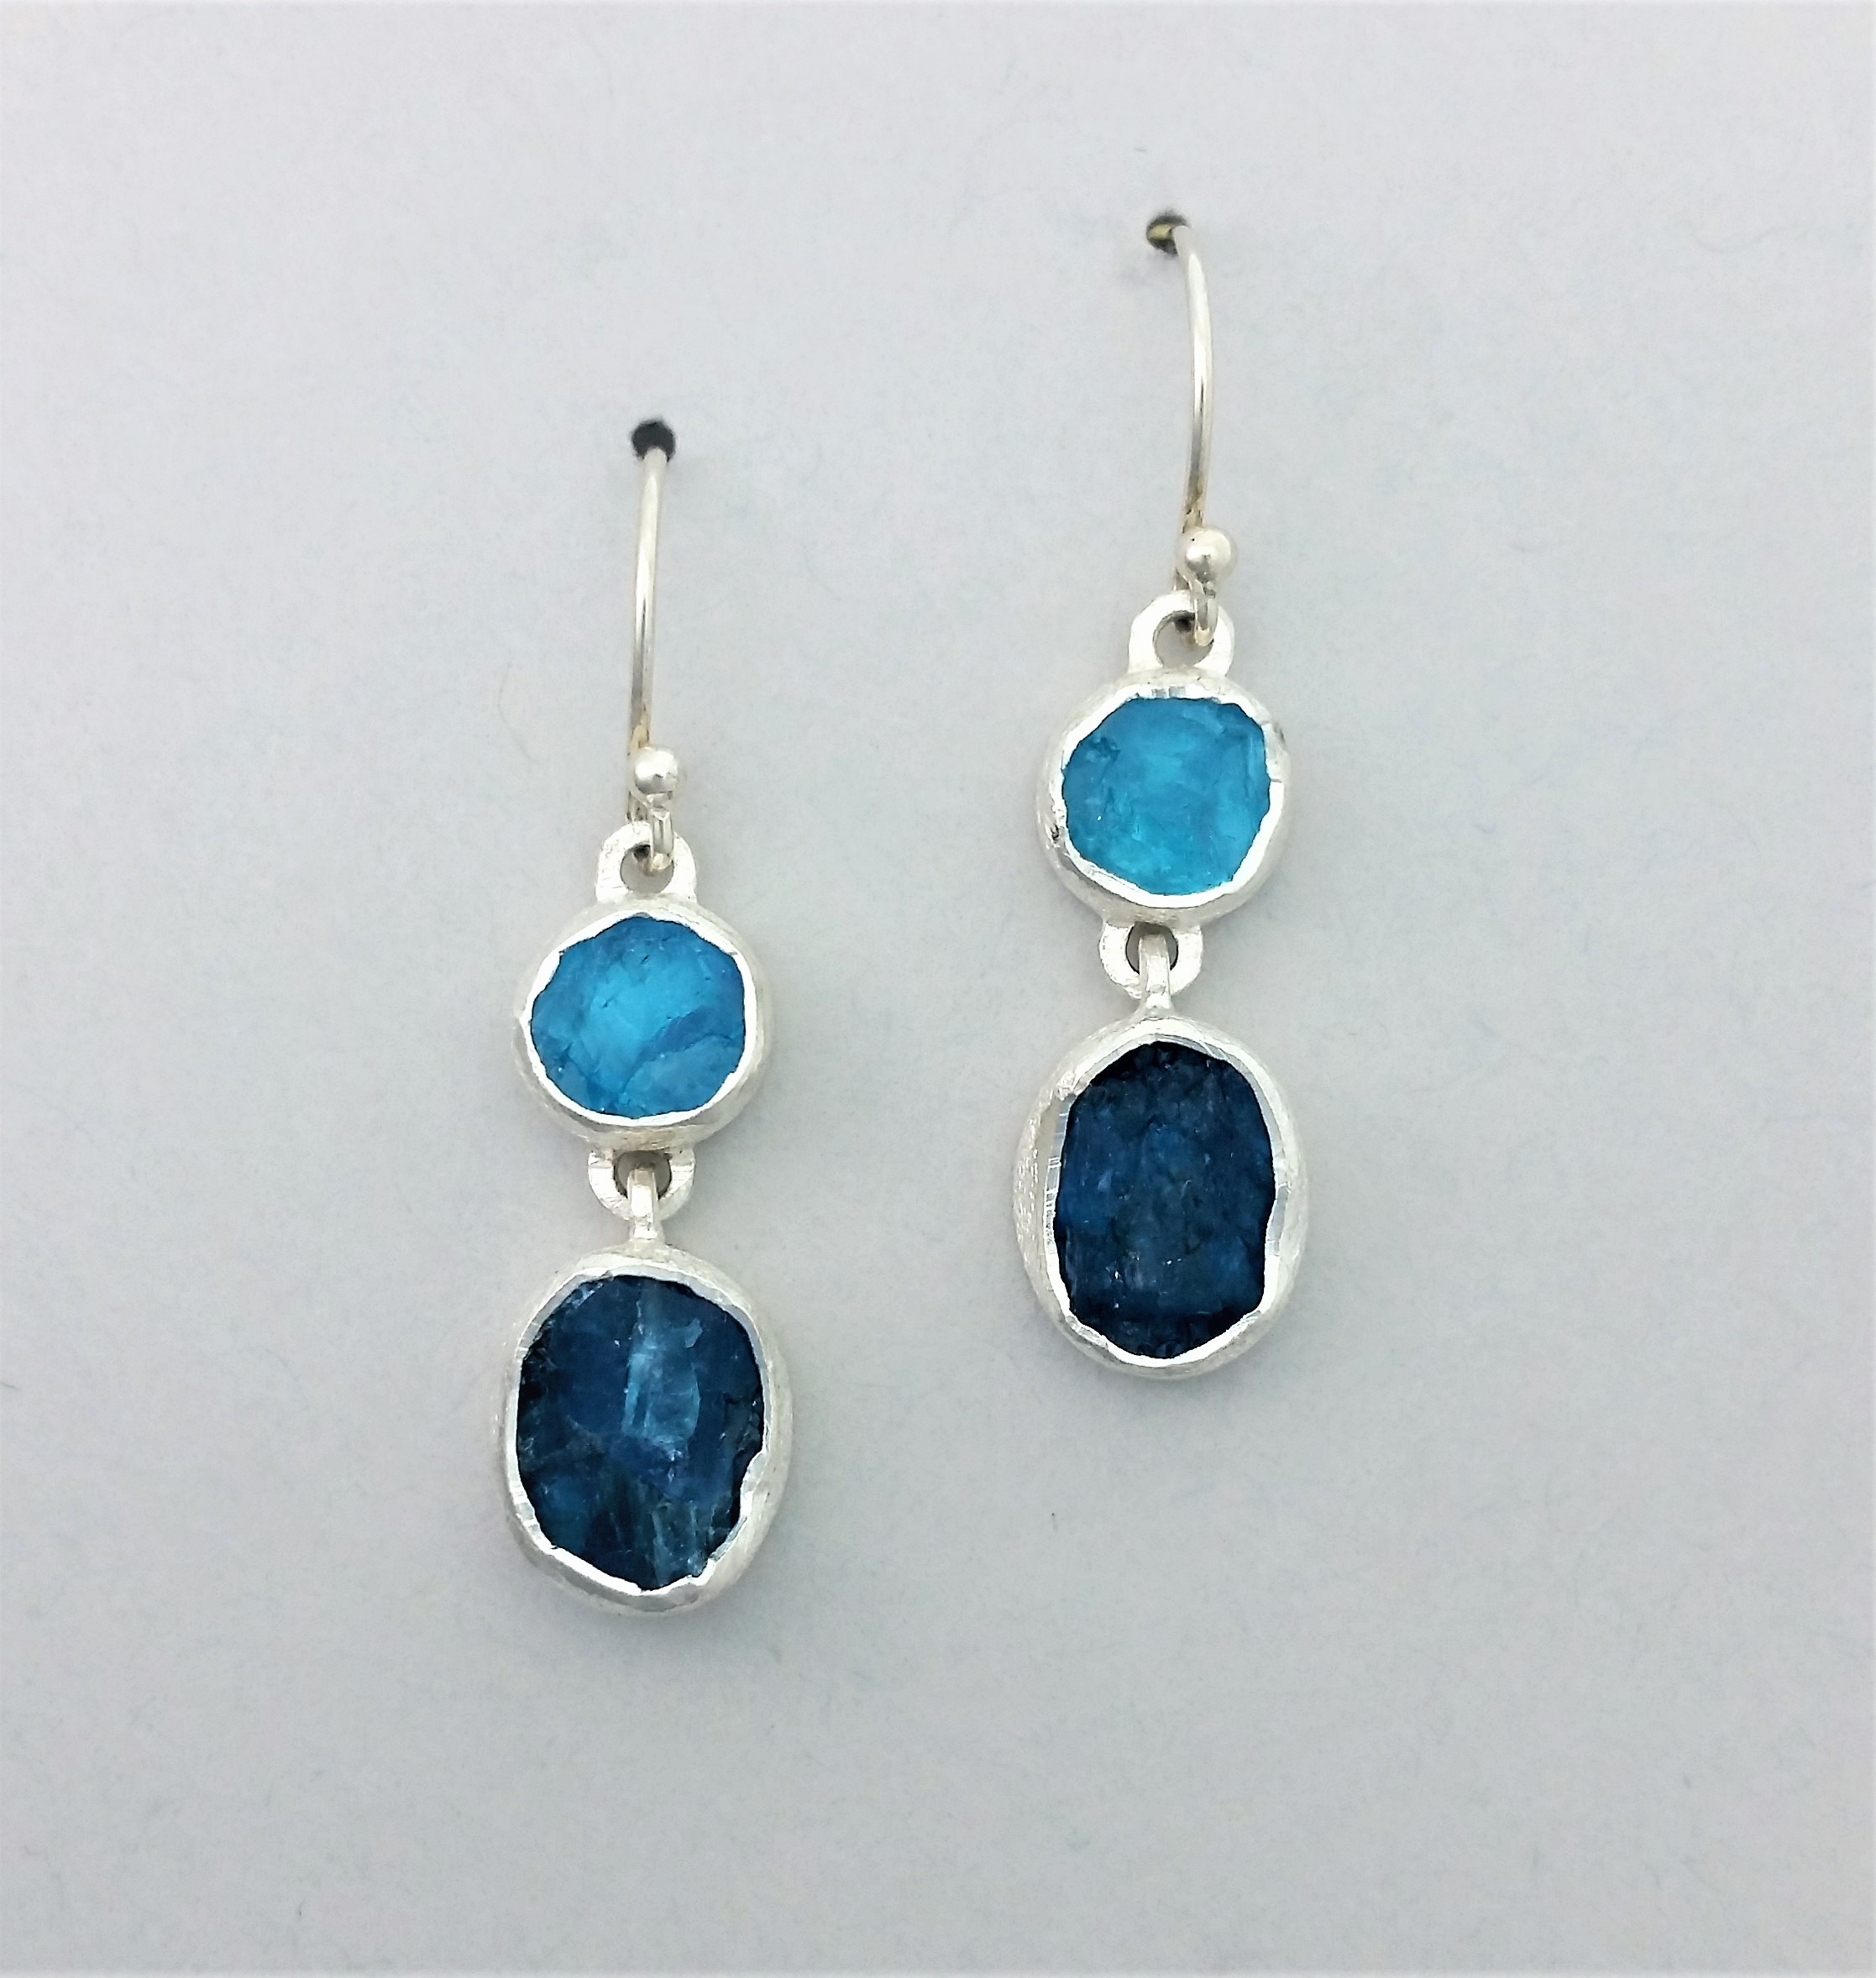 blue personal silver healing earrings stone huxa growth fullxfull and il for apatite listing dangle in independence sterling